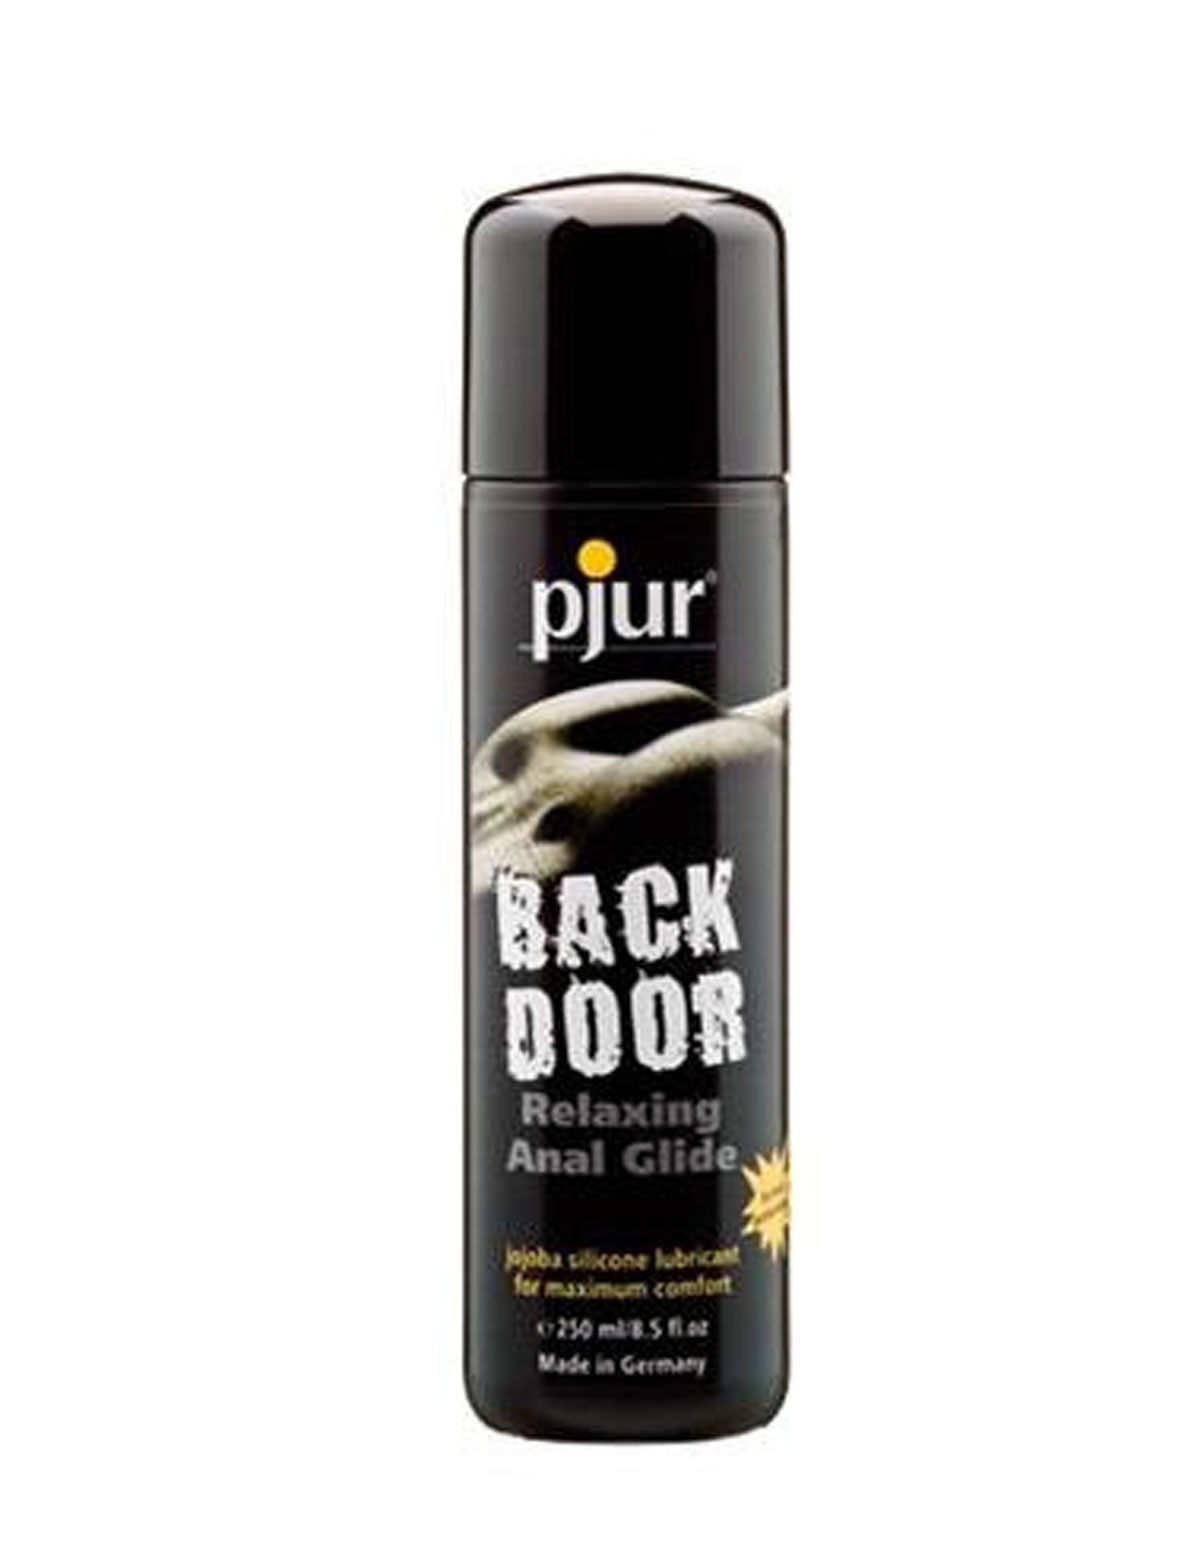 Pjur Backdoor Anal Glide 250Ml